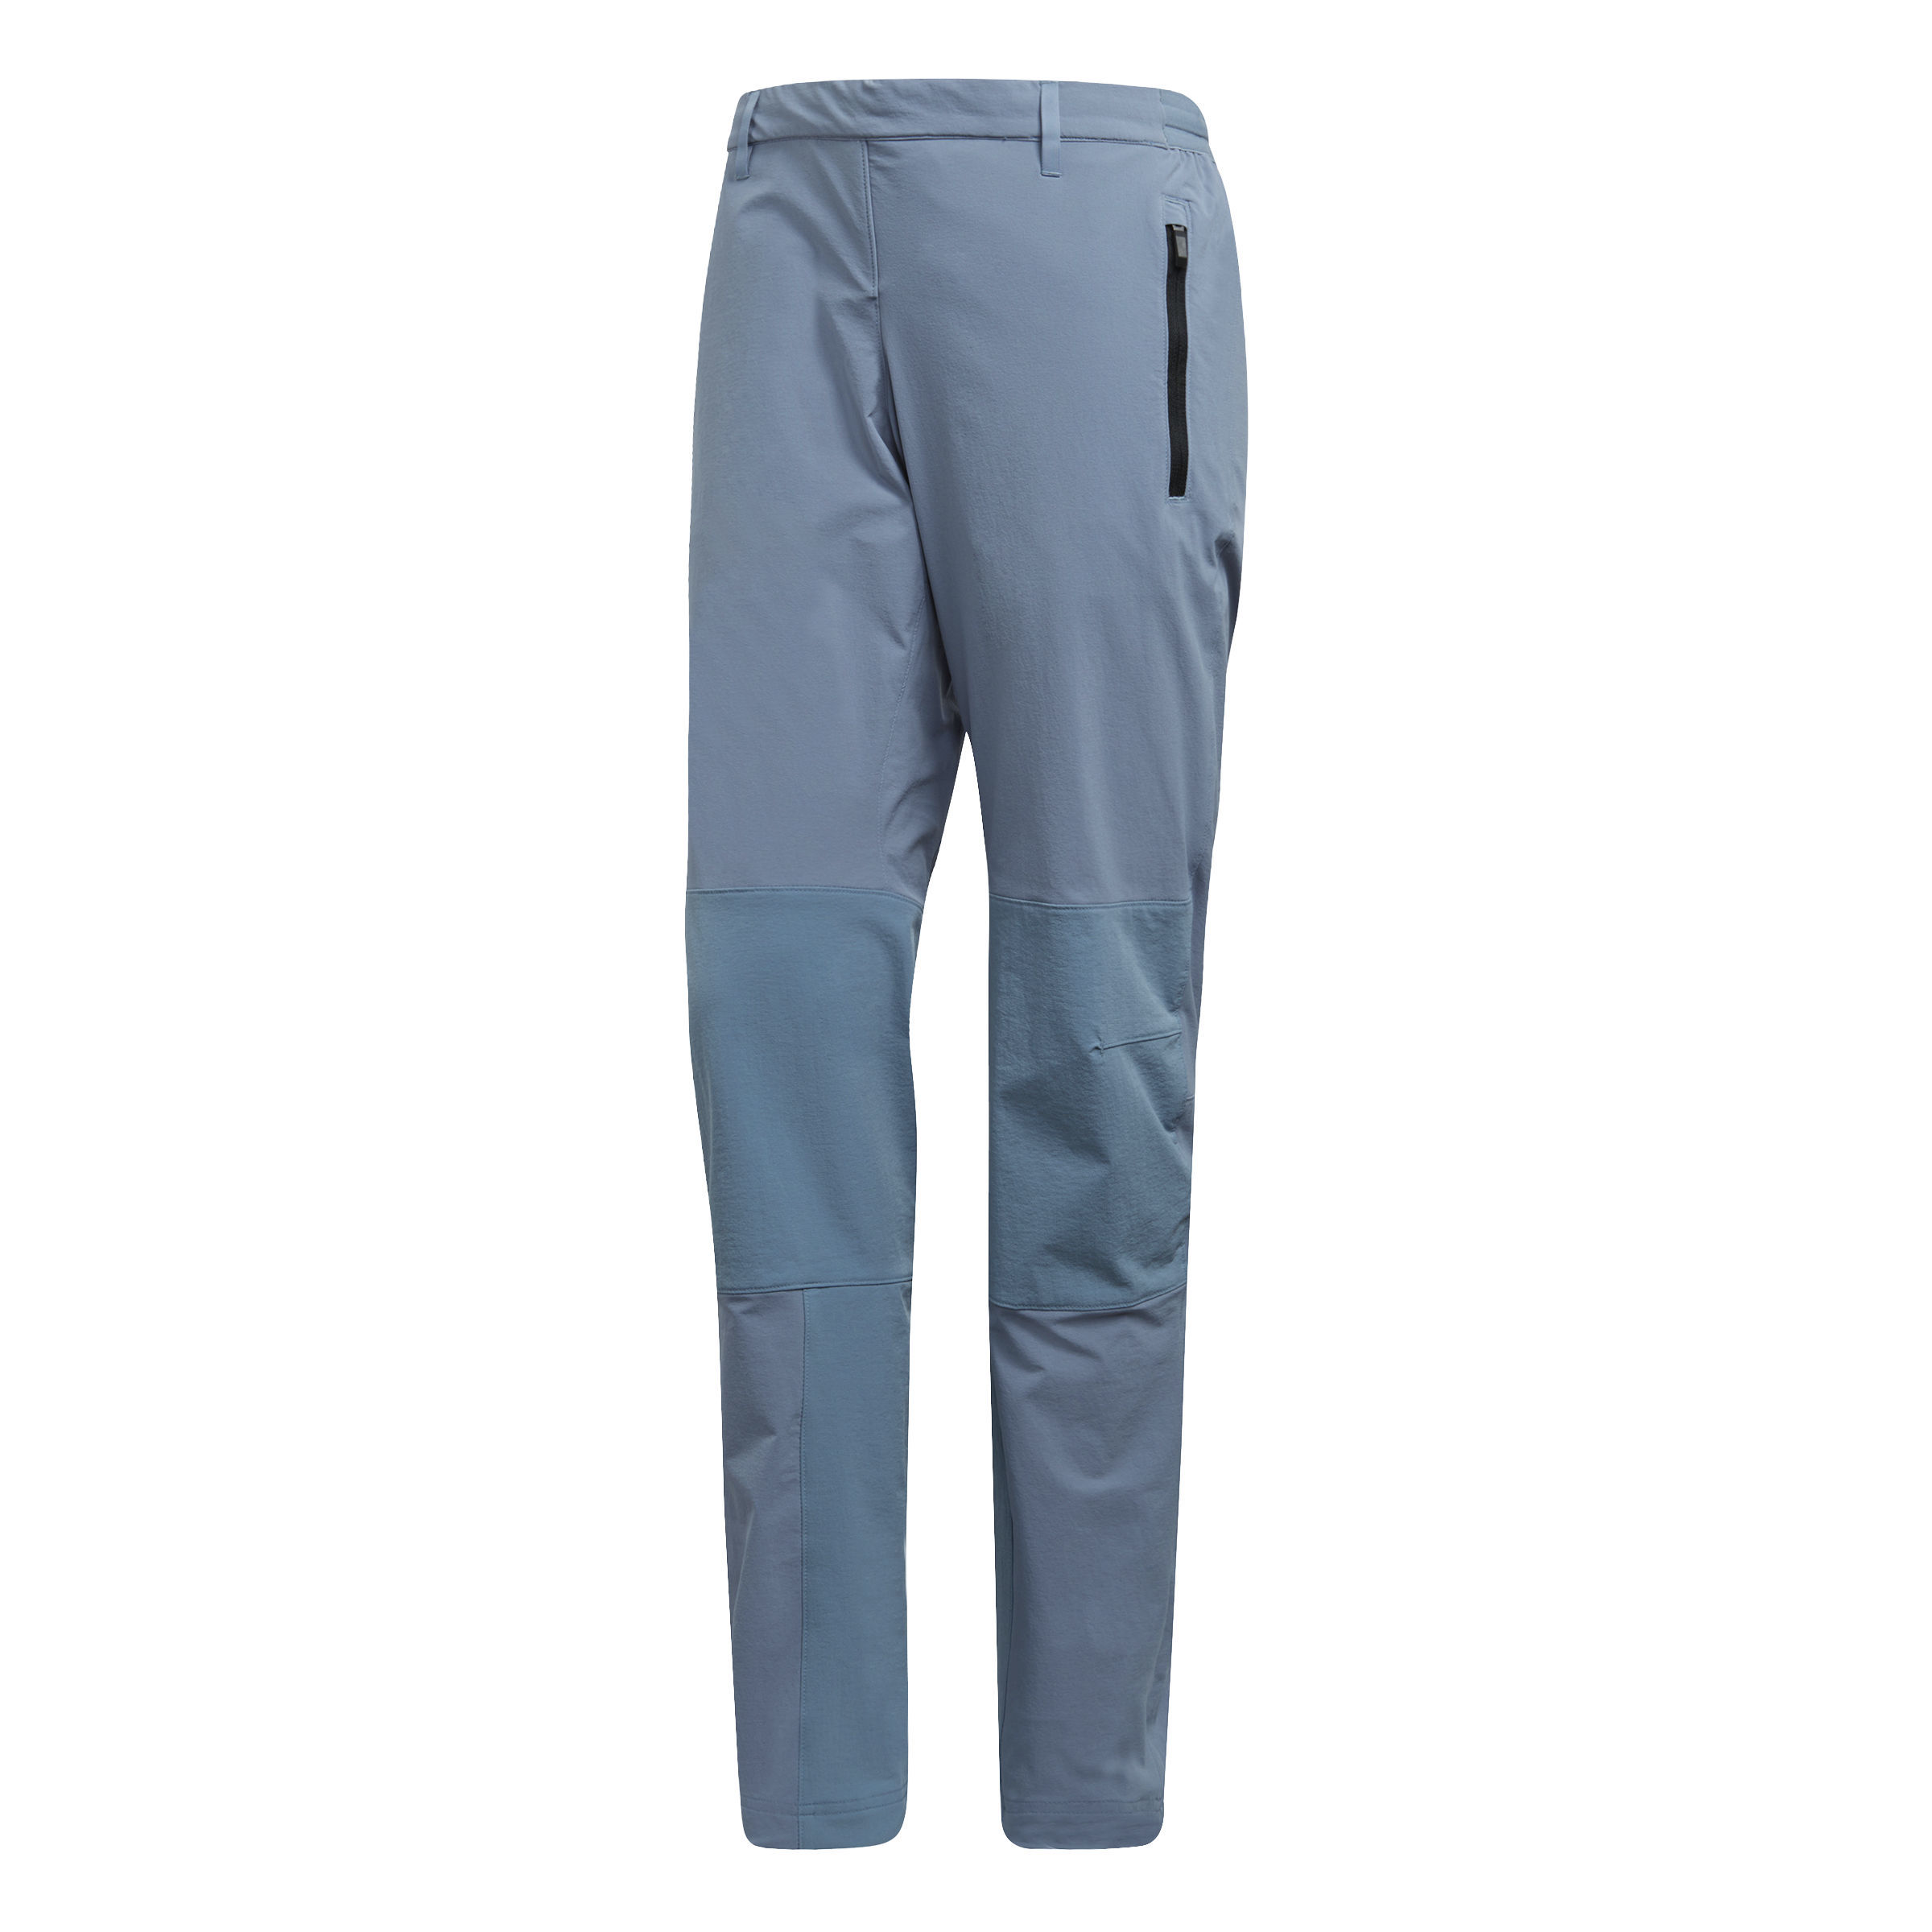 Adidas Outdoor Terrex Multi Pant Womens